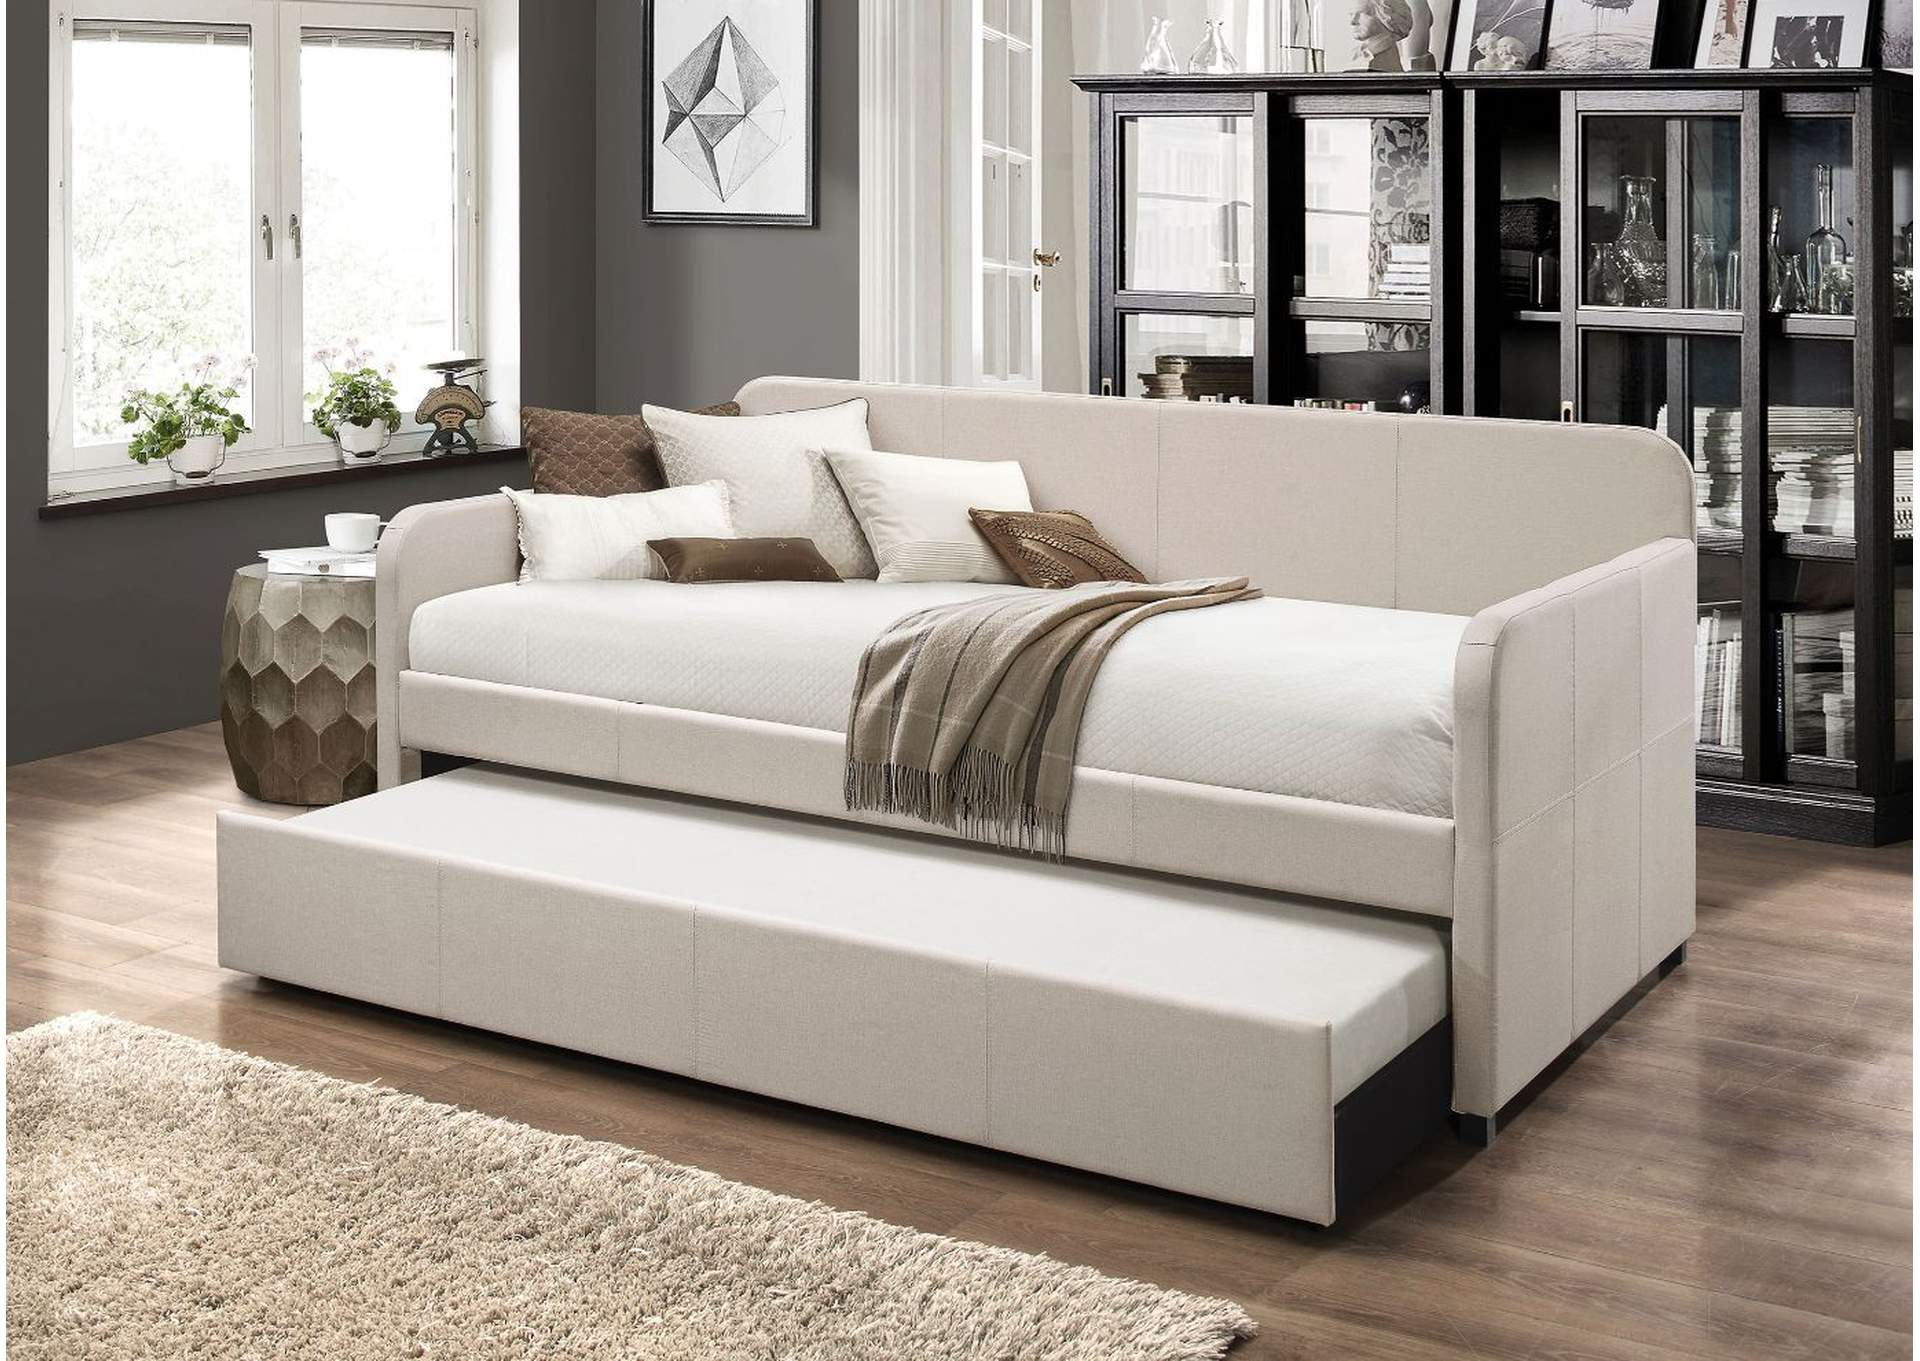 Jagger Twin Daybed W Trundle Best Buy Furniture And Mattress